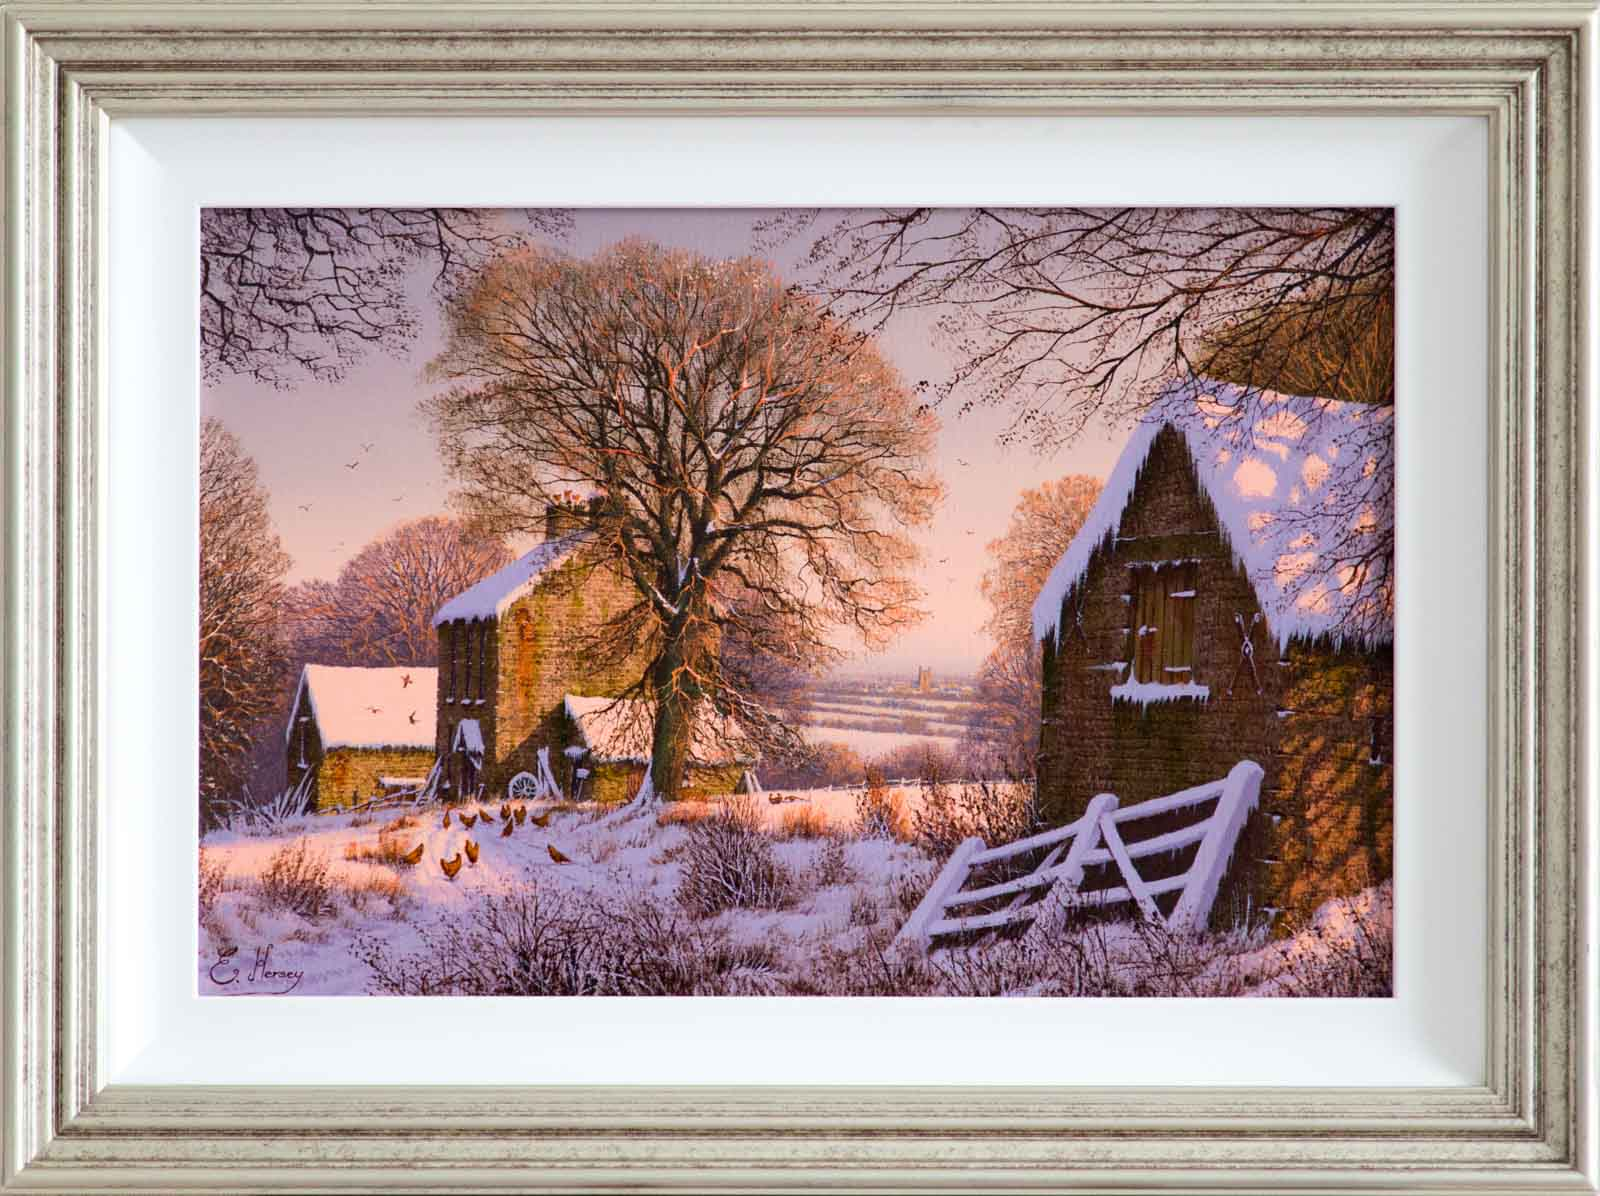 Snowfall at the Farm, Edward Hersey